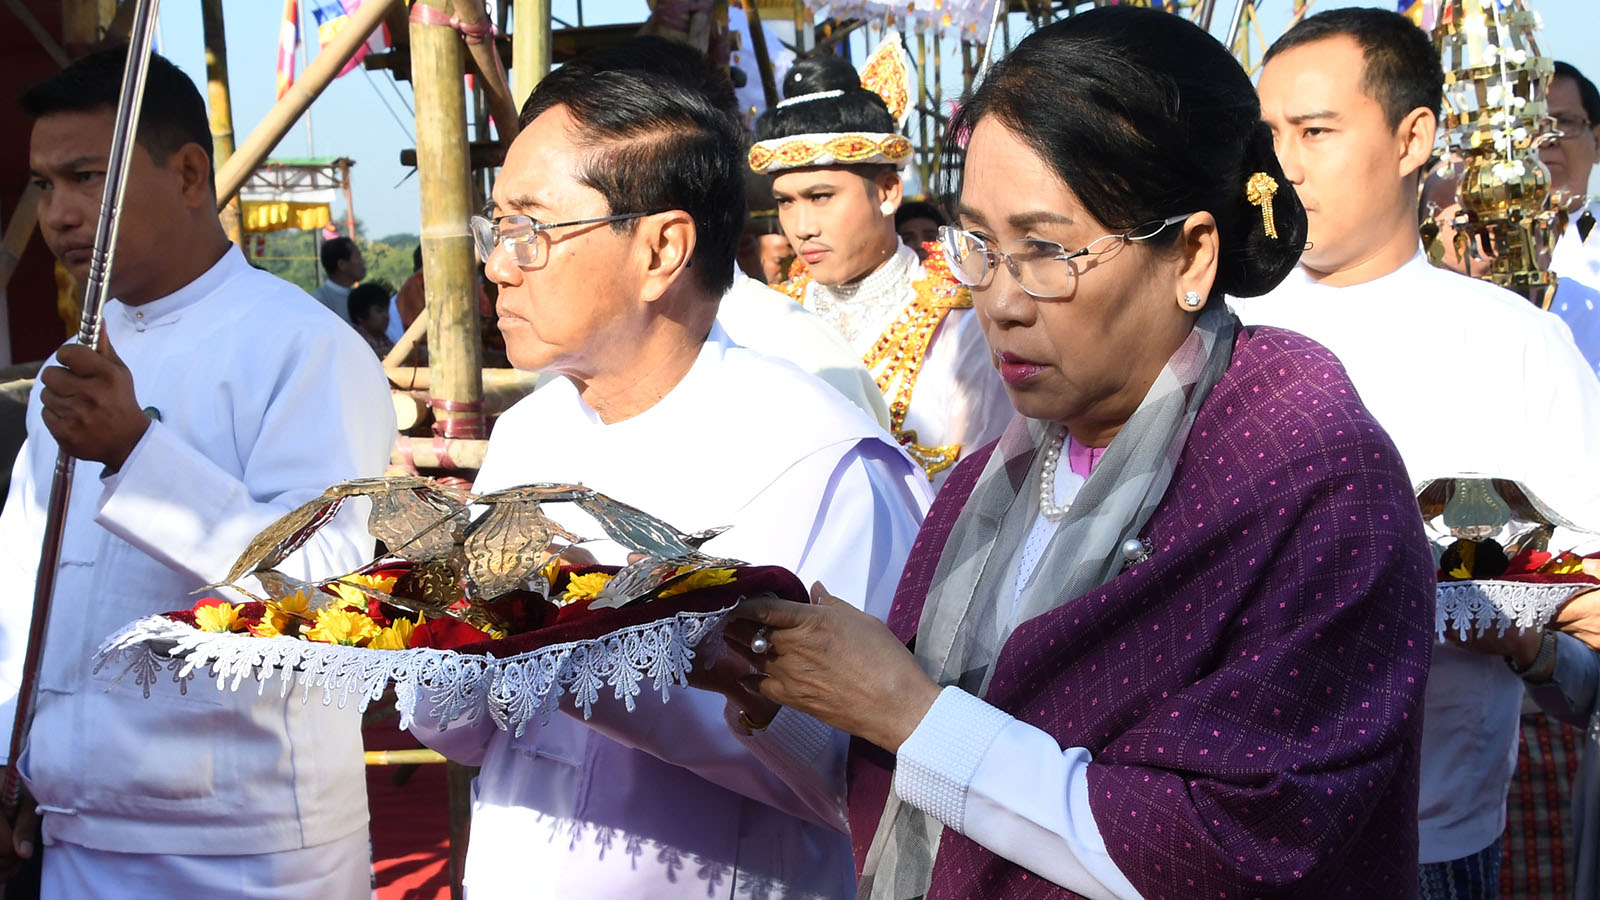 Vice President U Myint Swe and wife Daw Khin Thet Htay convey religious objects at the consecration ceremony of Taungsuya 'Wa' Zedi yesterday.Photo: MNA